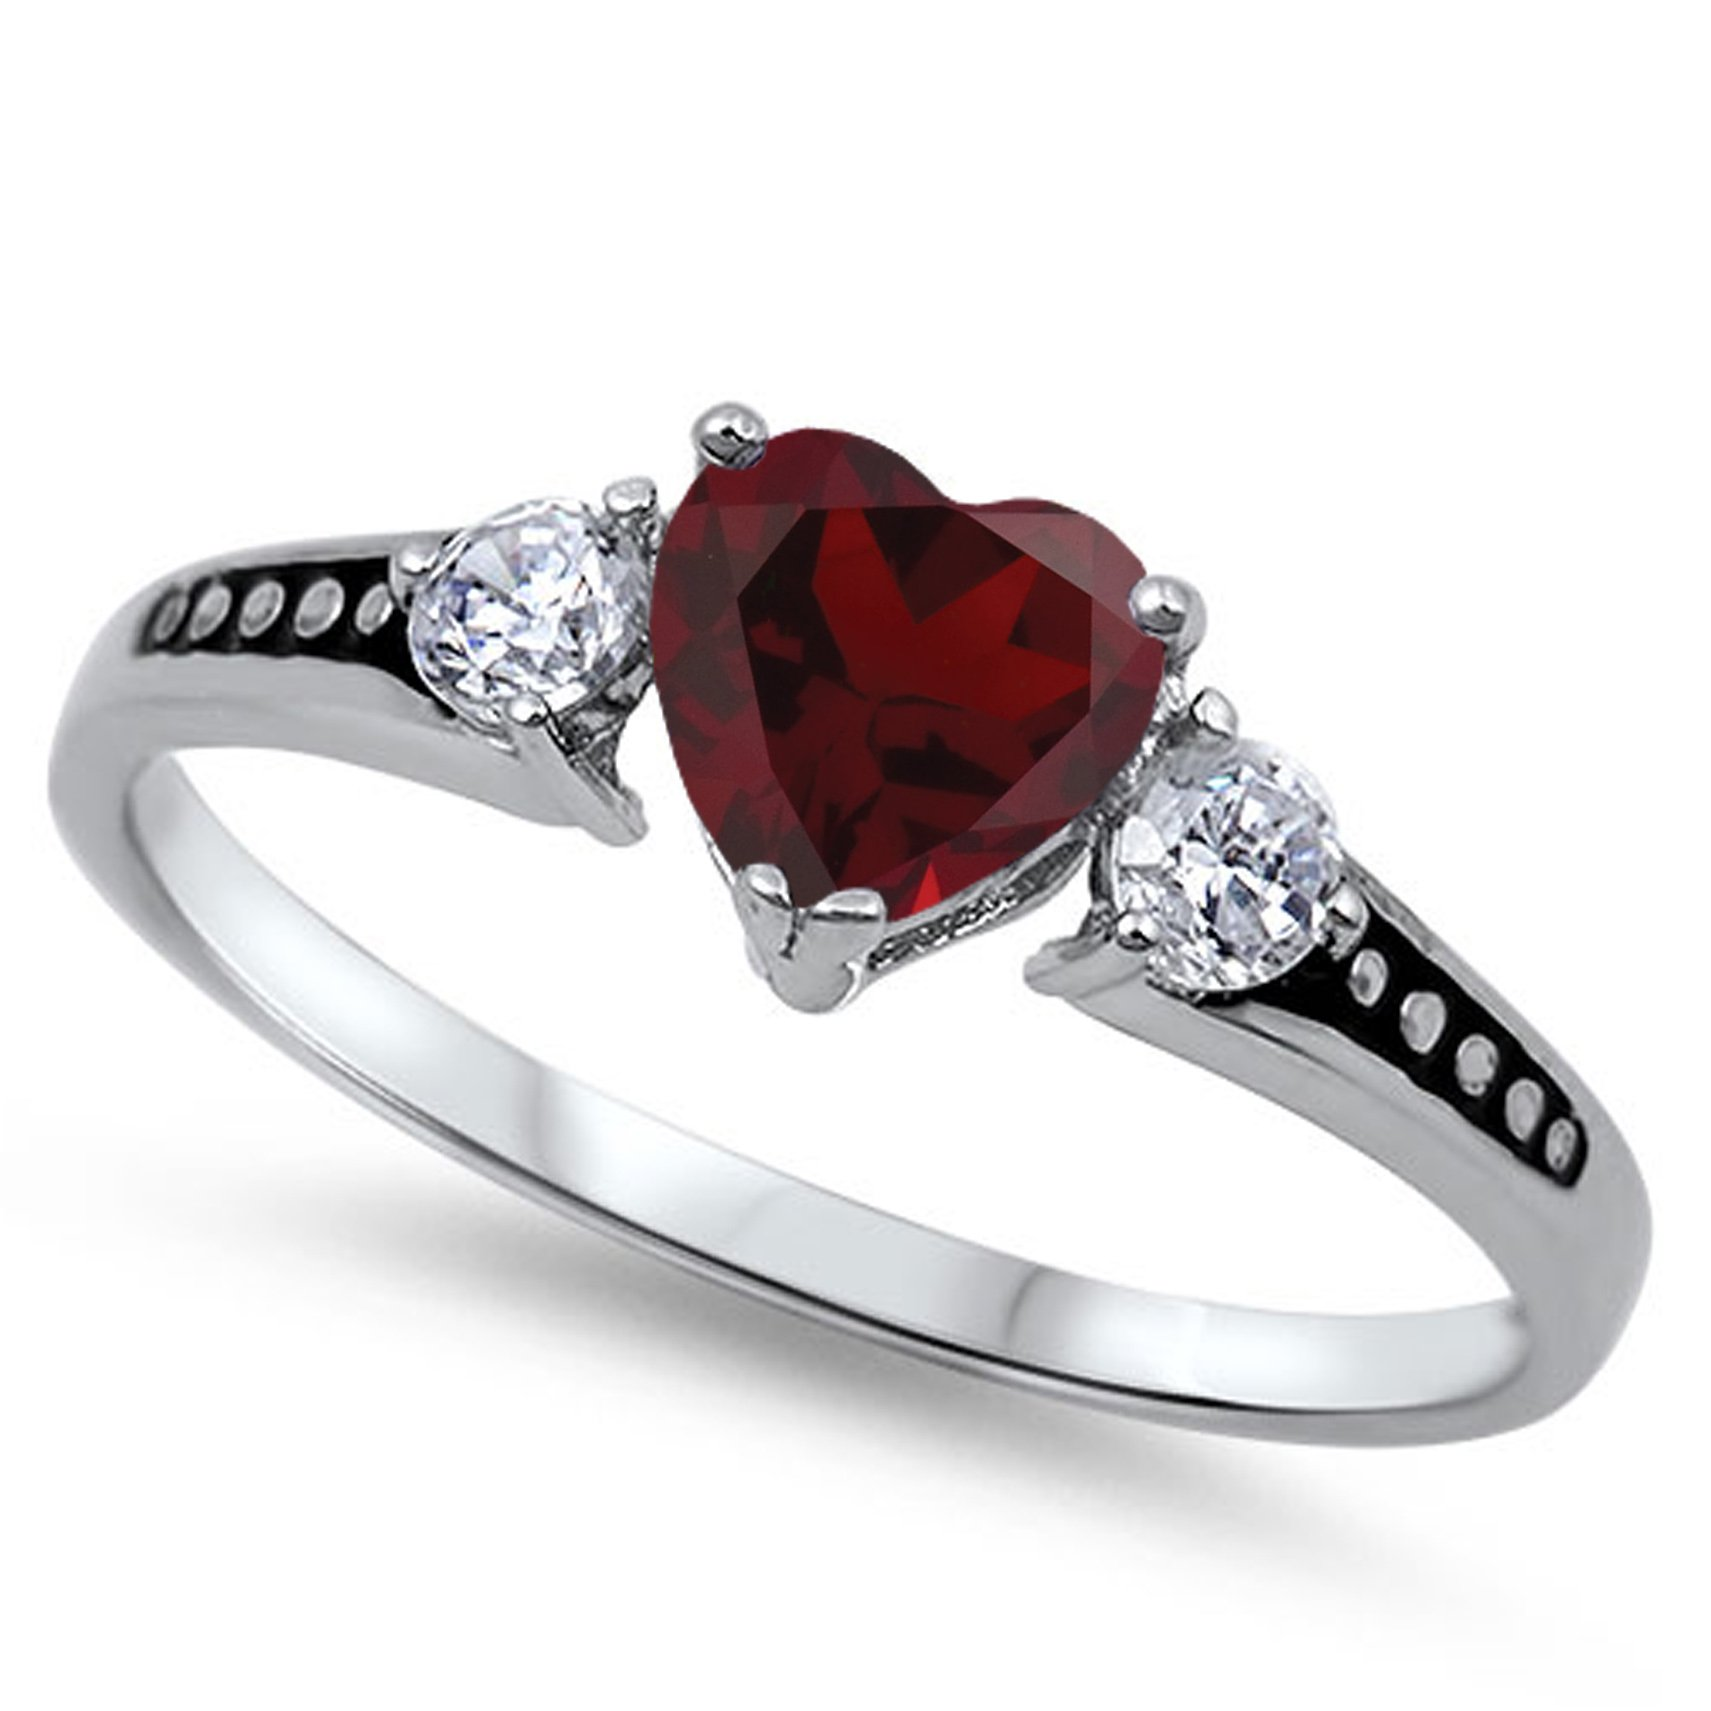 925 Sterling Silver Round Faceted Natural Genuine Red Ruby Heart Promise Ring Size 7